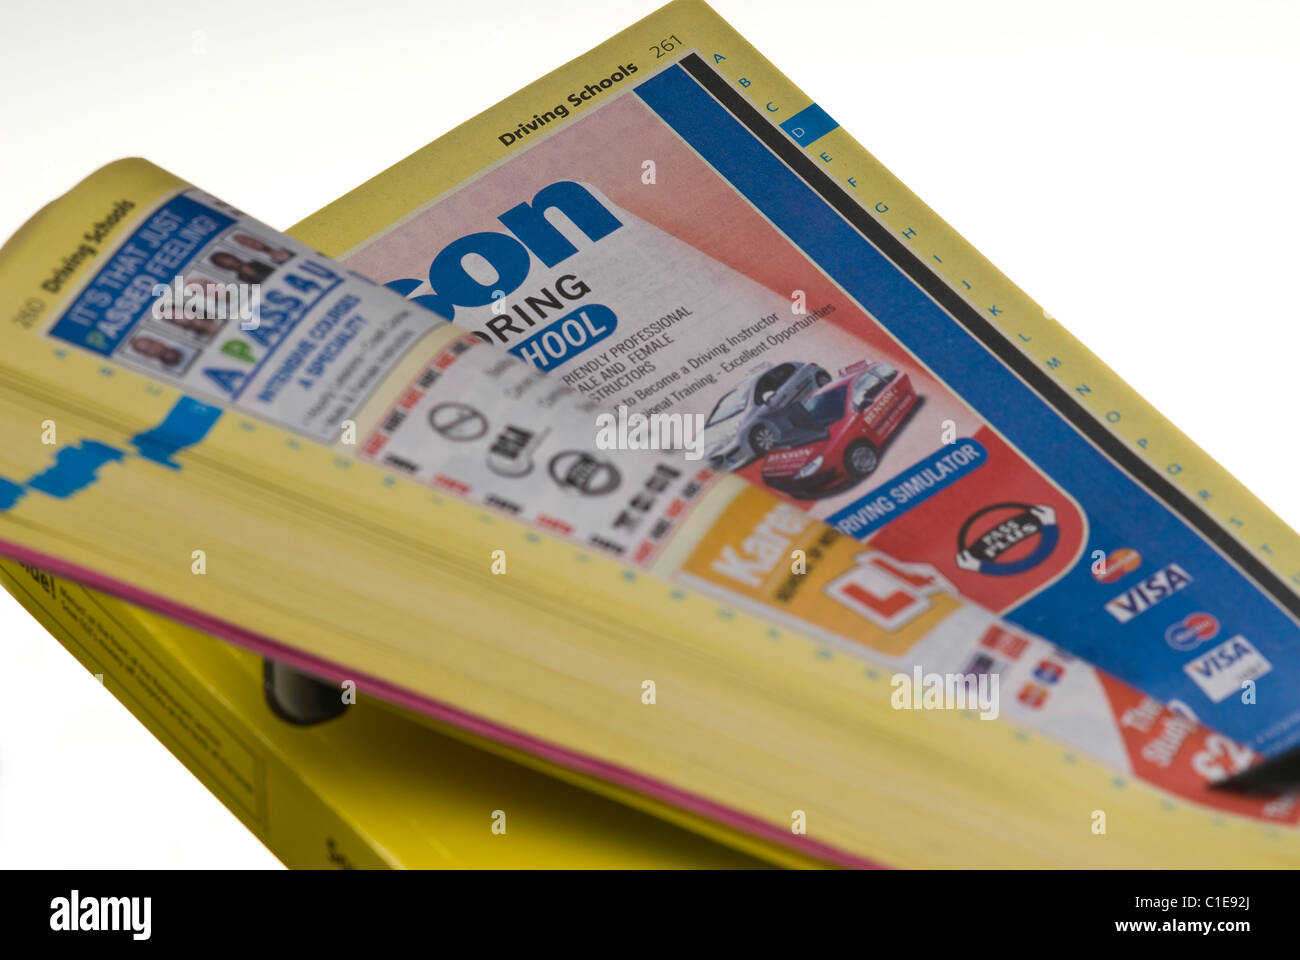 Listings Stock Photos & Listings Stock Images - Alamy